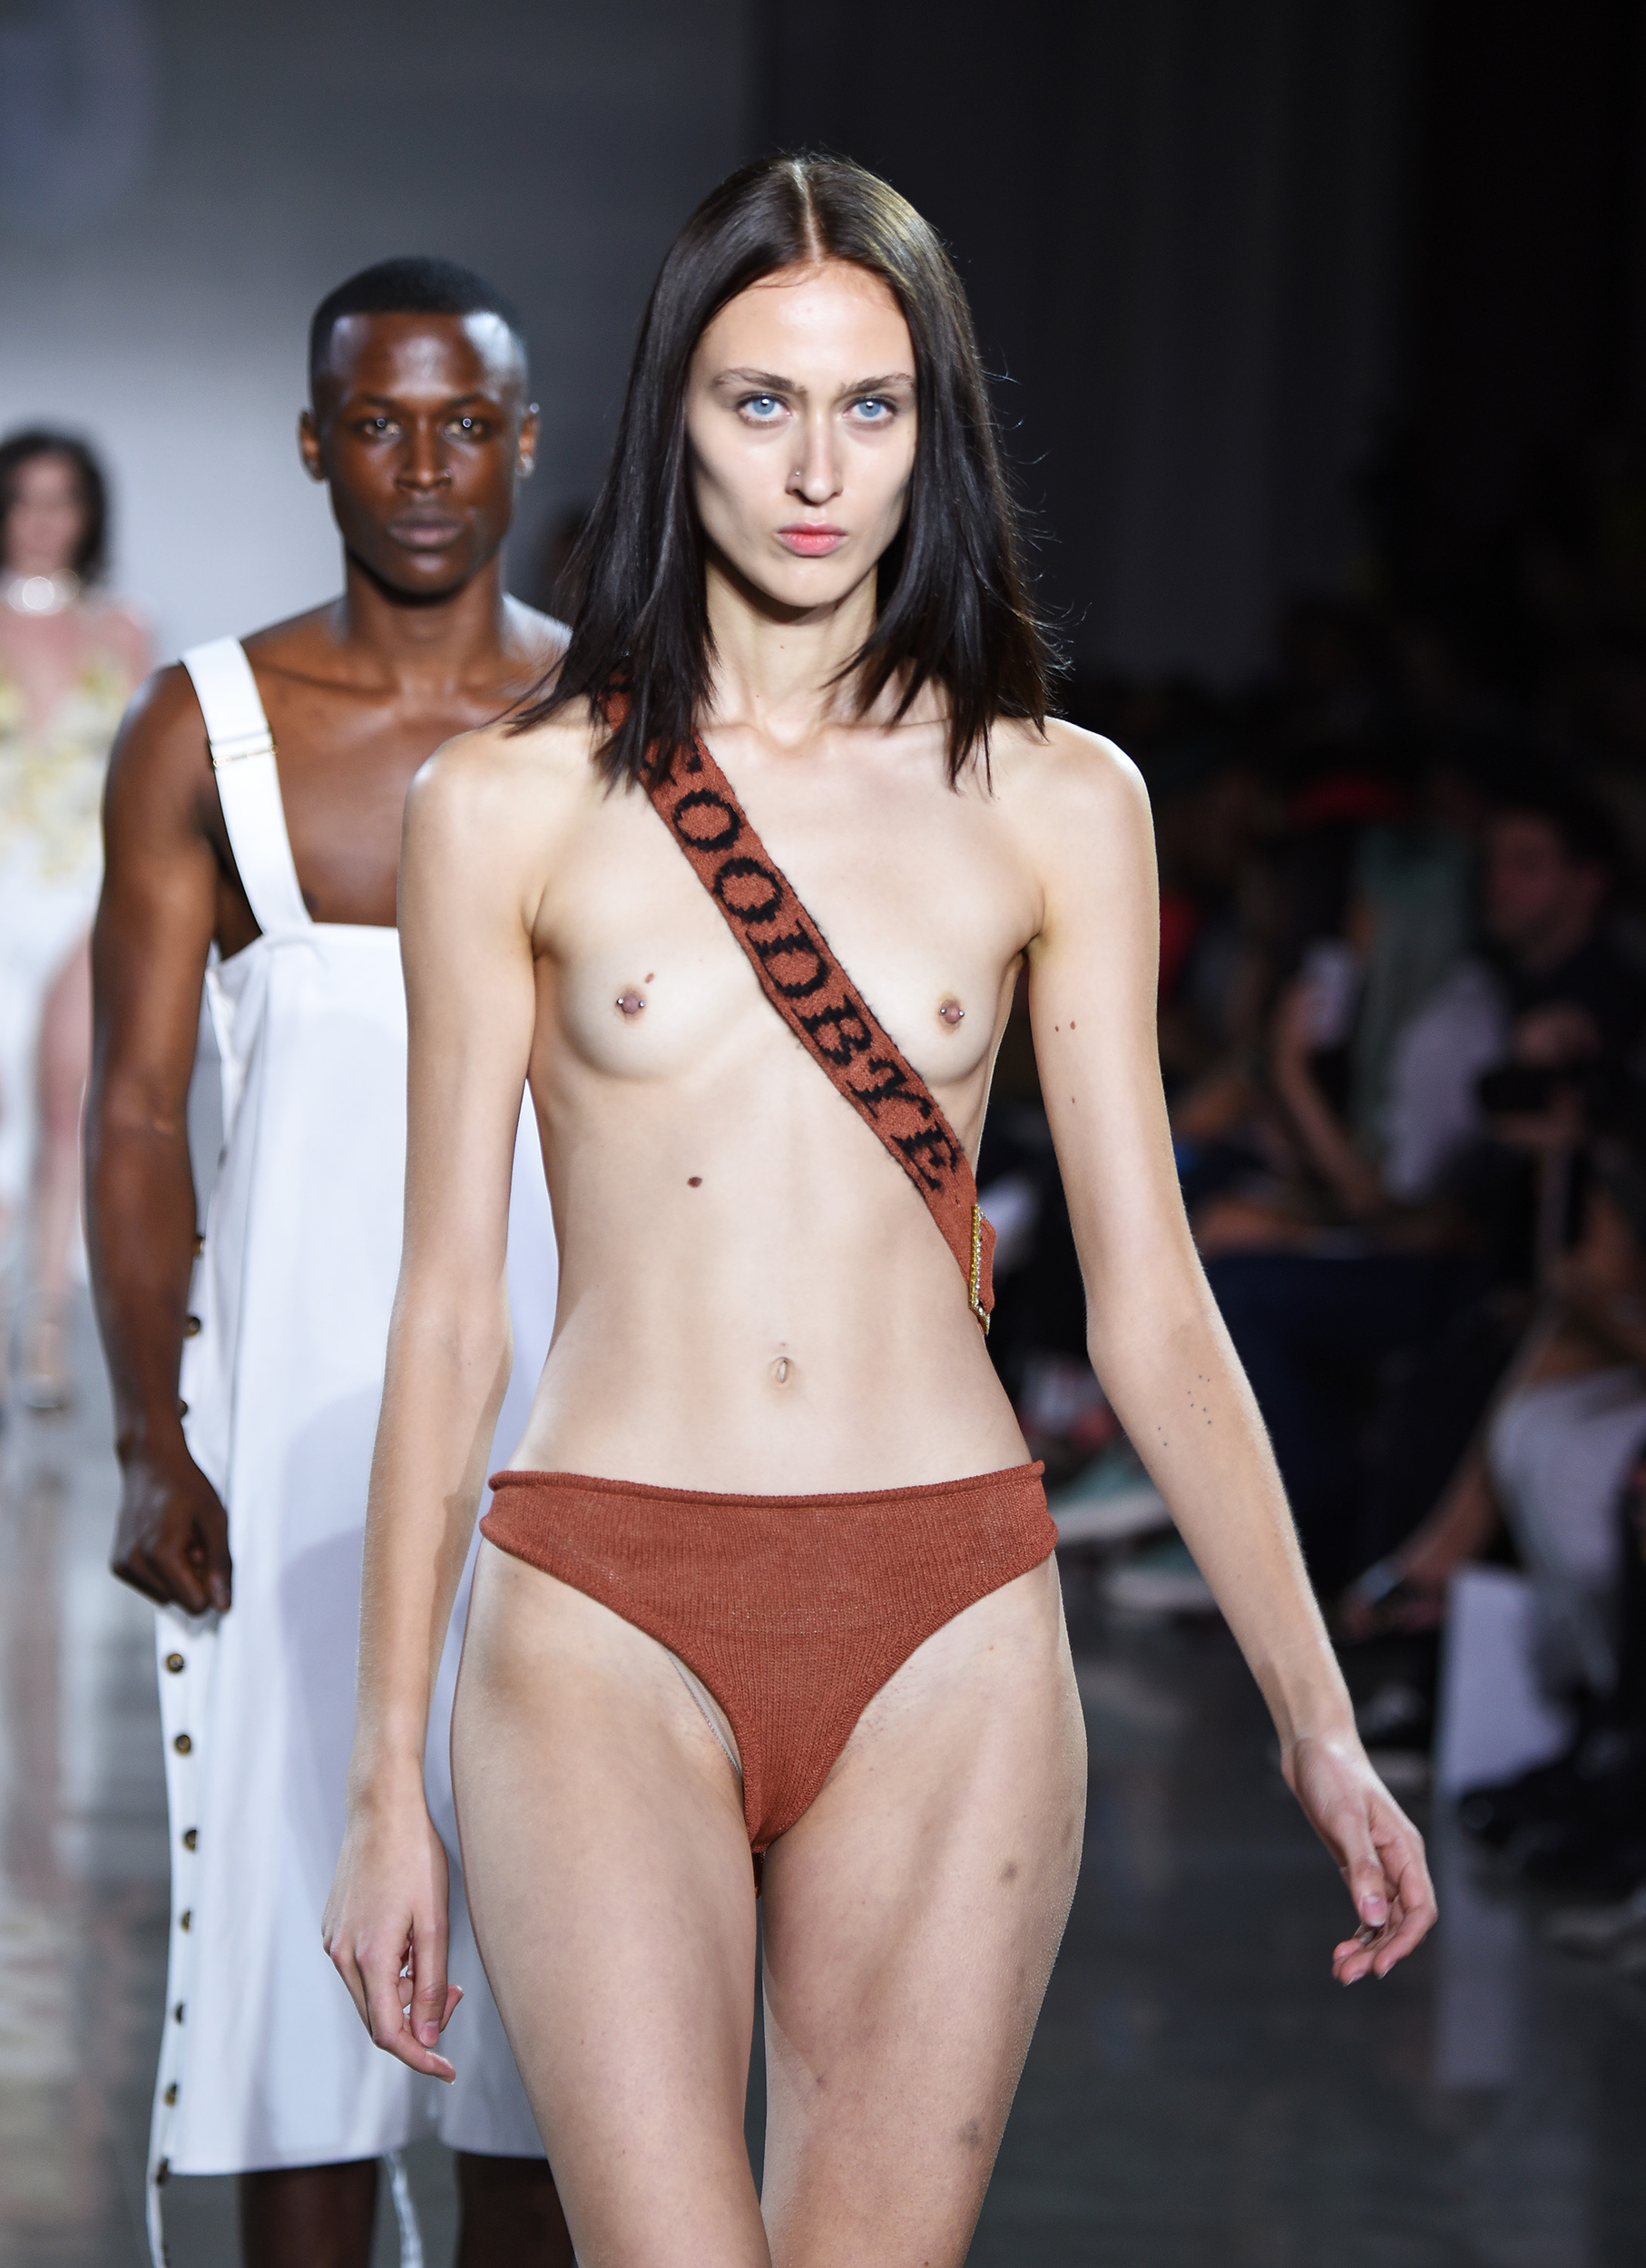 adult nude models on the runway